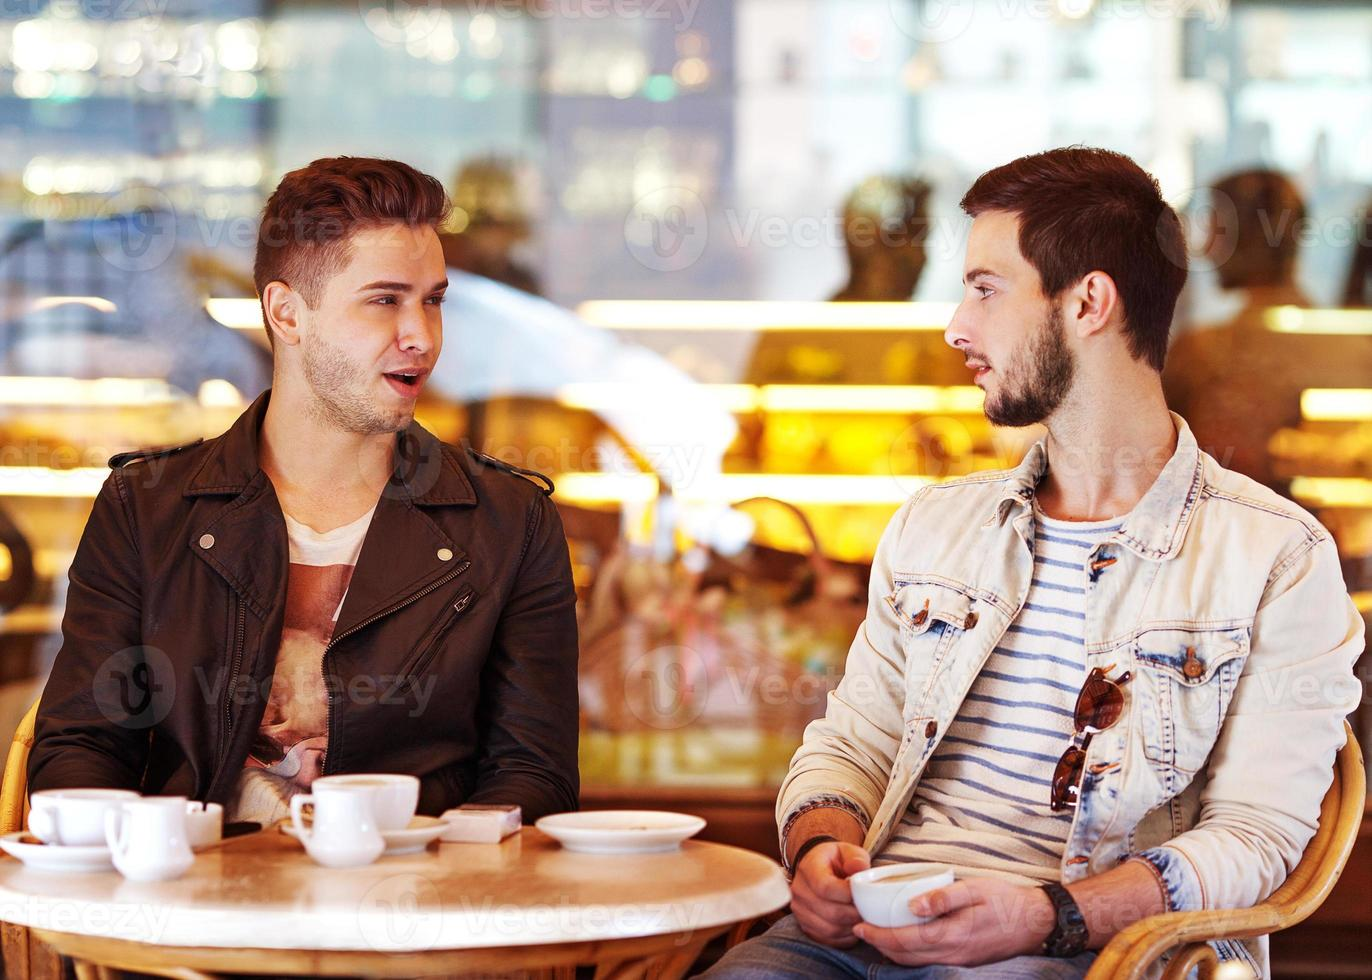 Two young men / students using tablet computer in cafe photo